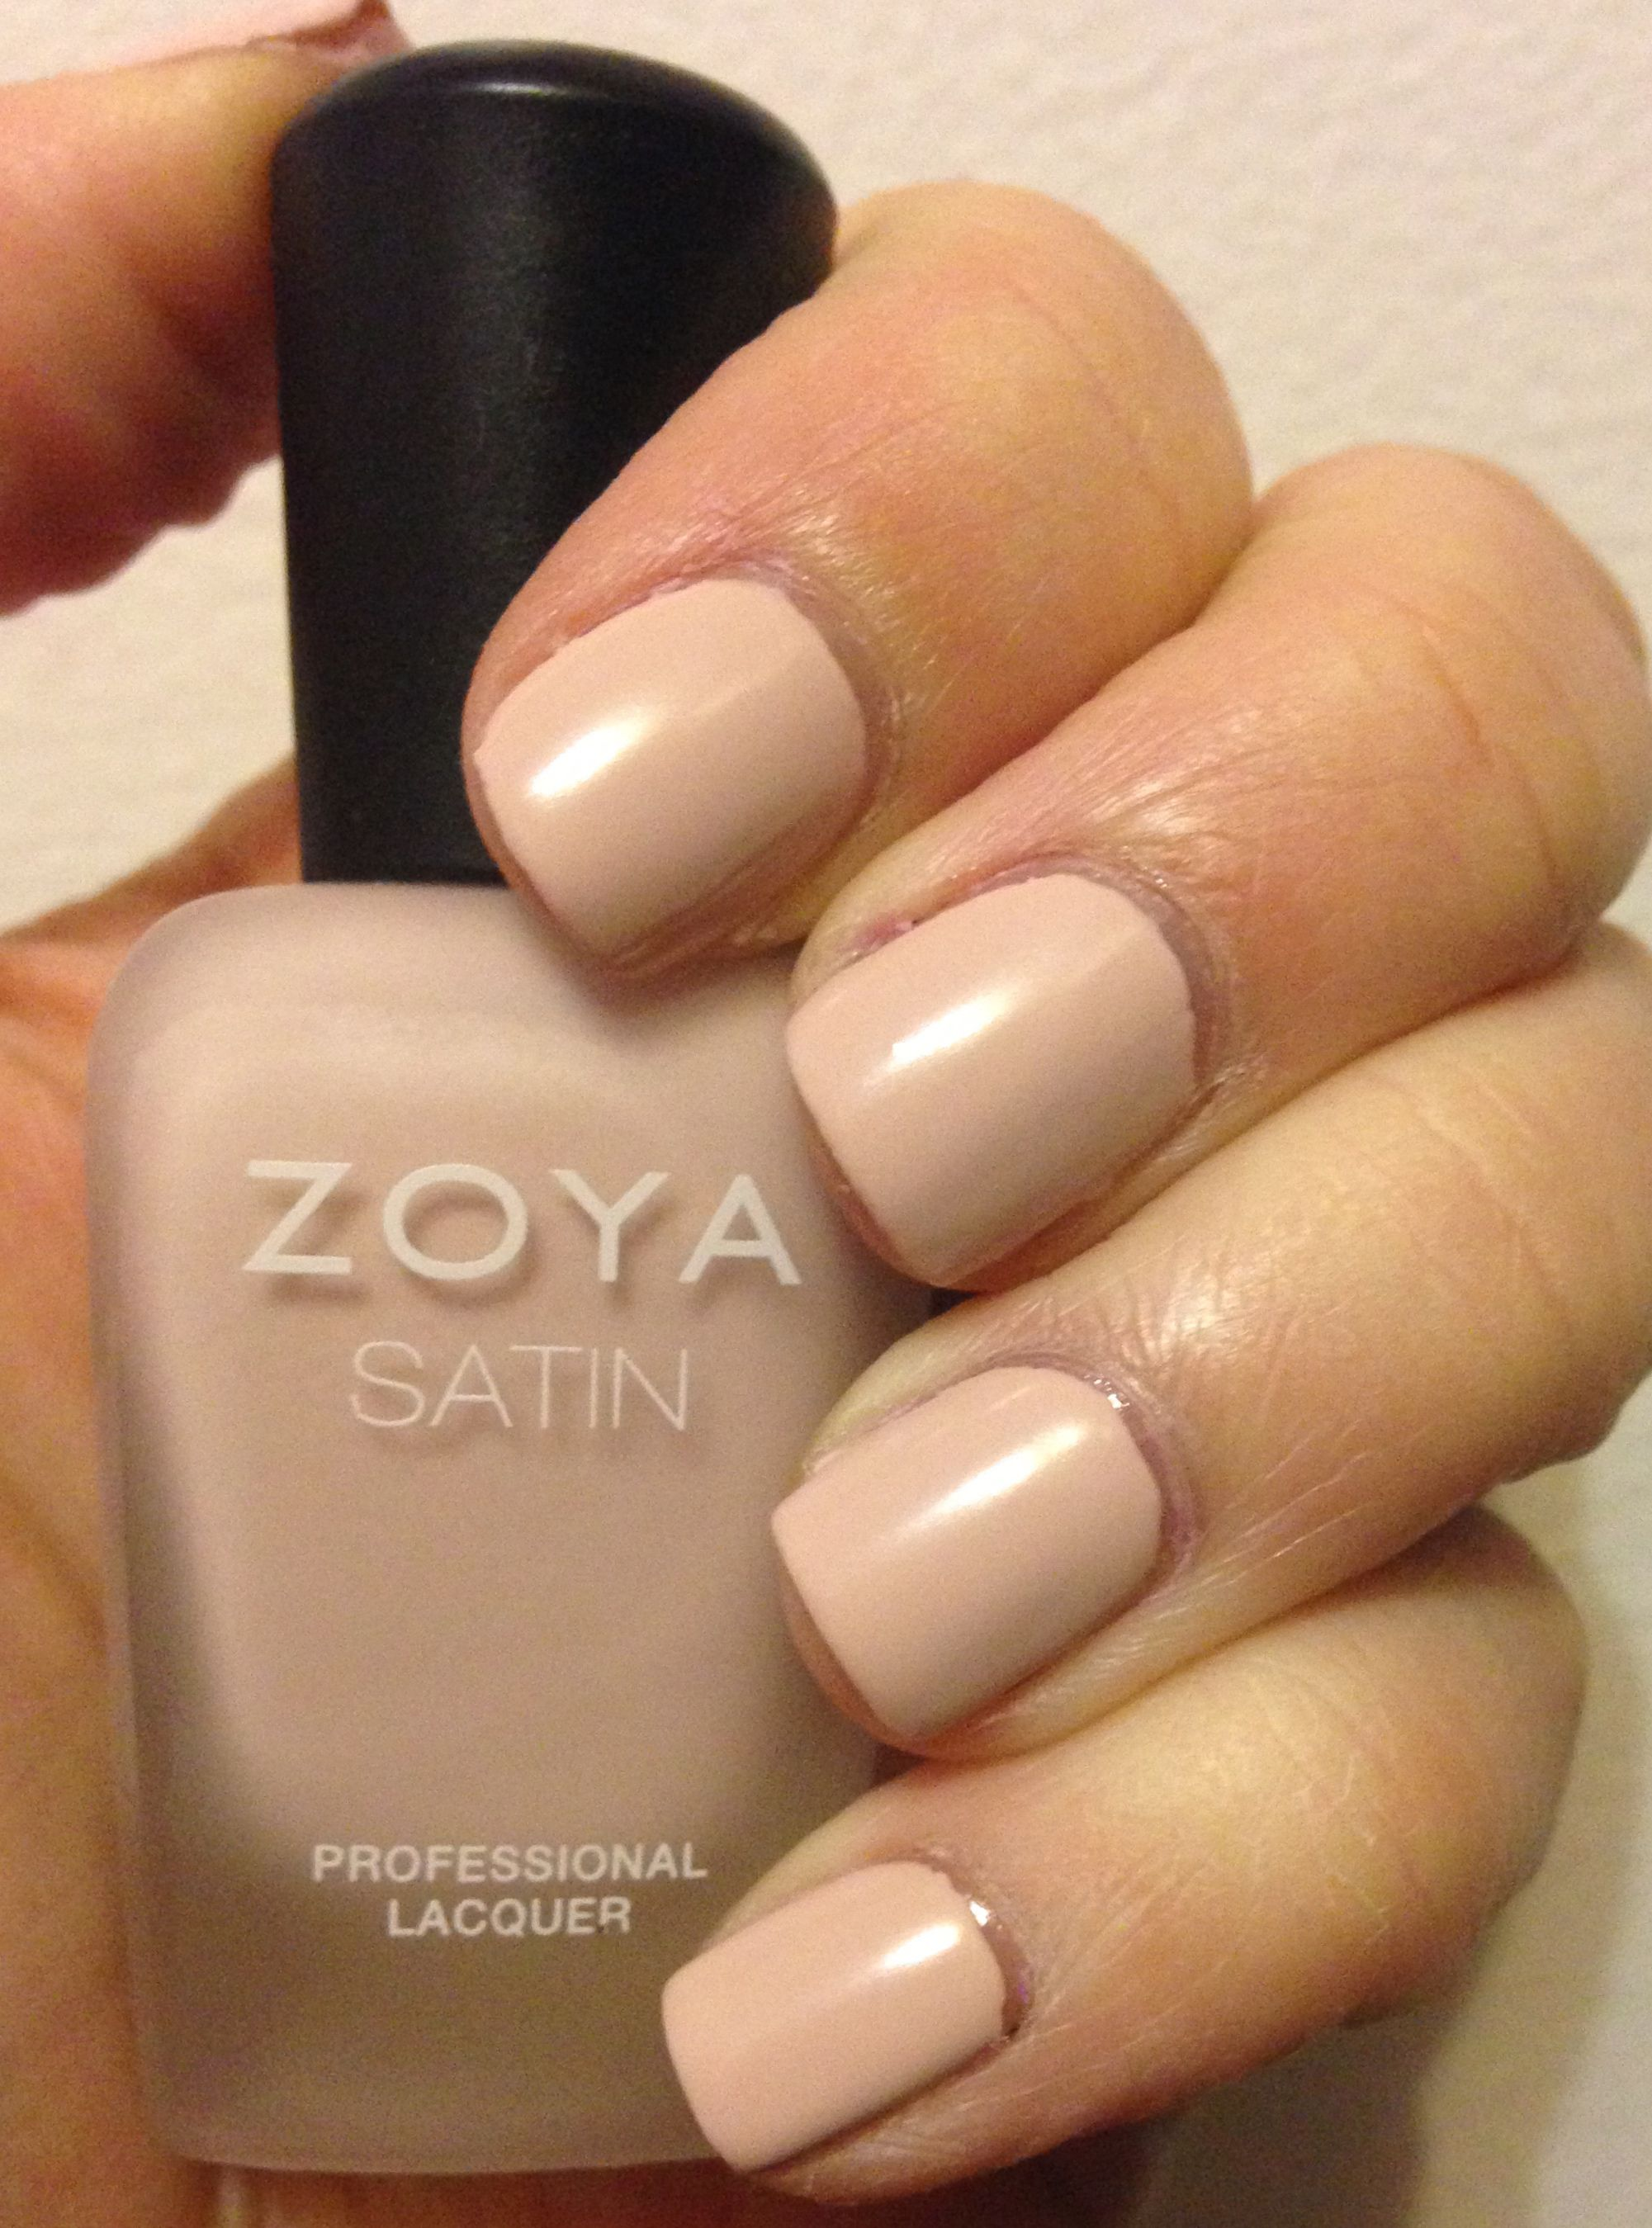 Pin by Melissa Breitfeller on Nails, Toes & Body Skincare